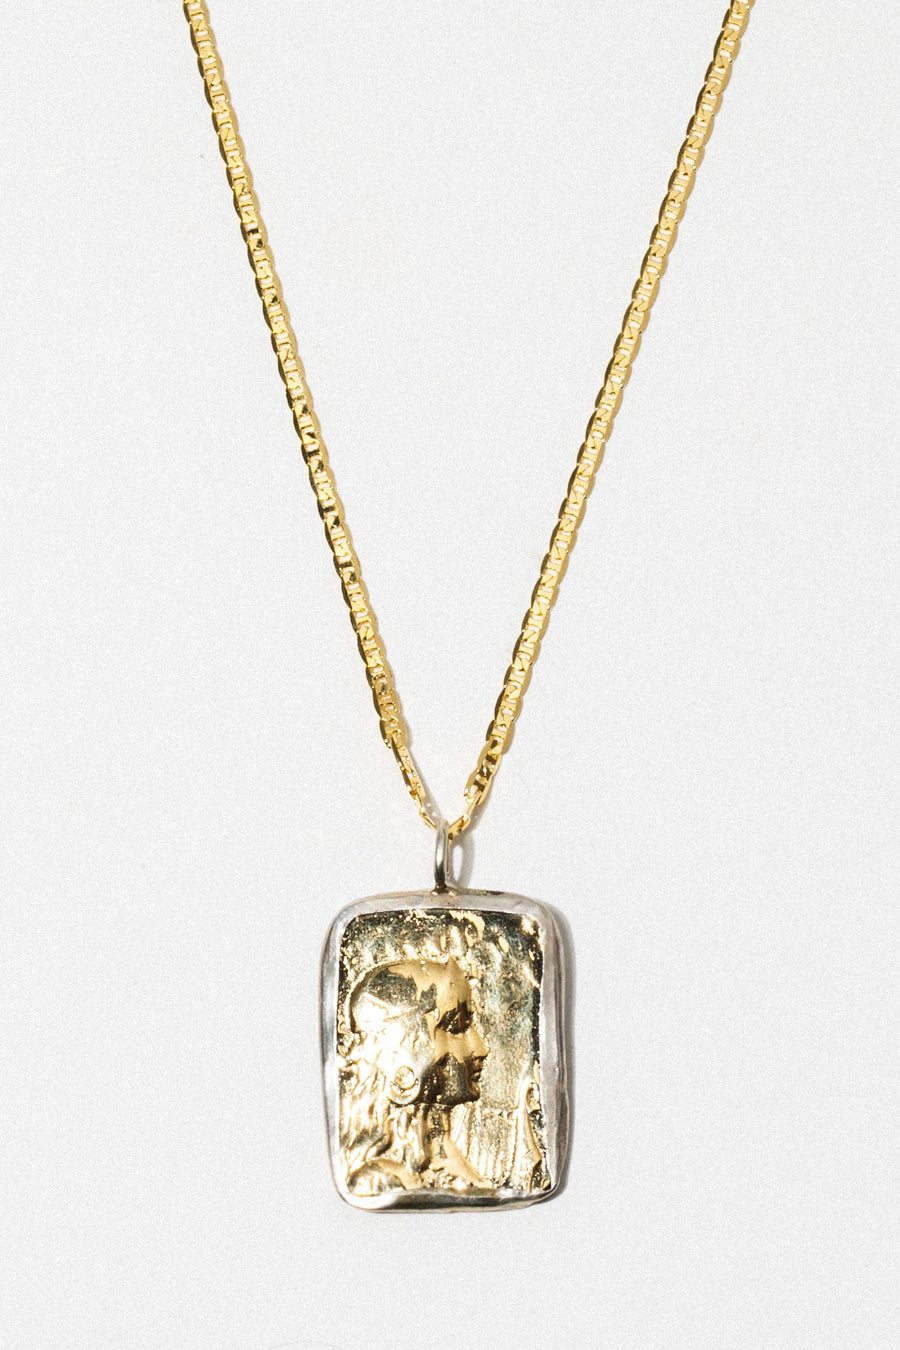 Dona Italia Jewelry Gold / 24 Inches nCW409